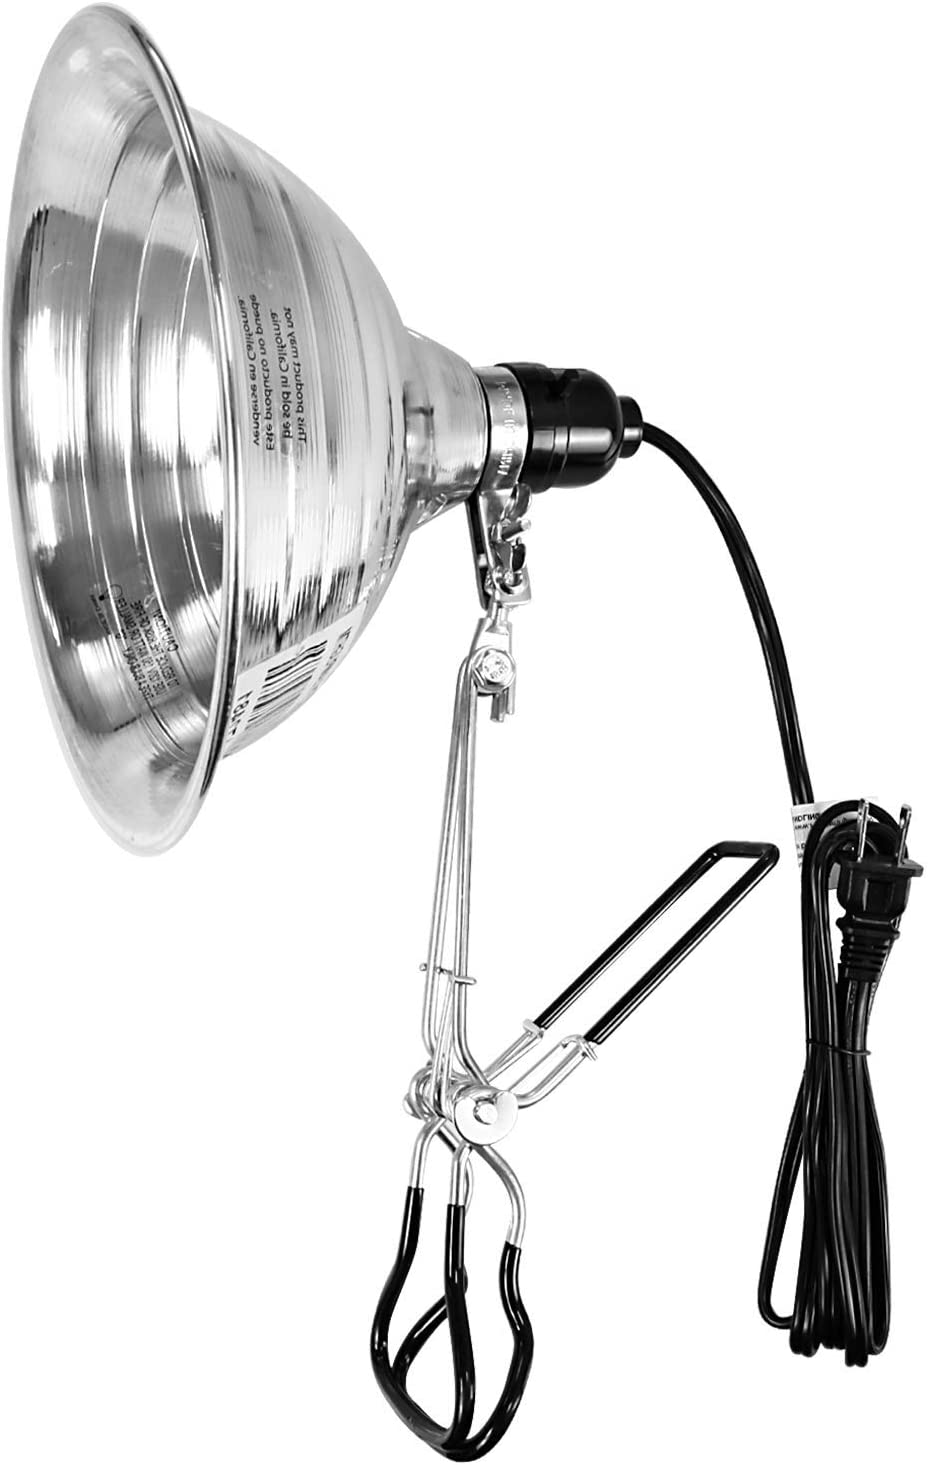 Simple Deluxe HIWKLTHEAVYCLAMPLIGHTM Tight Grip Clamp Lamp Light with 8.5 Inch Aluminum Reflector up to 150 Watt E26 Socket (no Bulb Included) 6 Feet 18/2 SPT-2 Cord, Silver